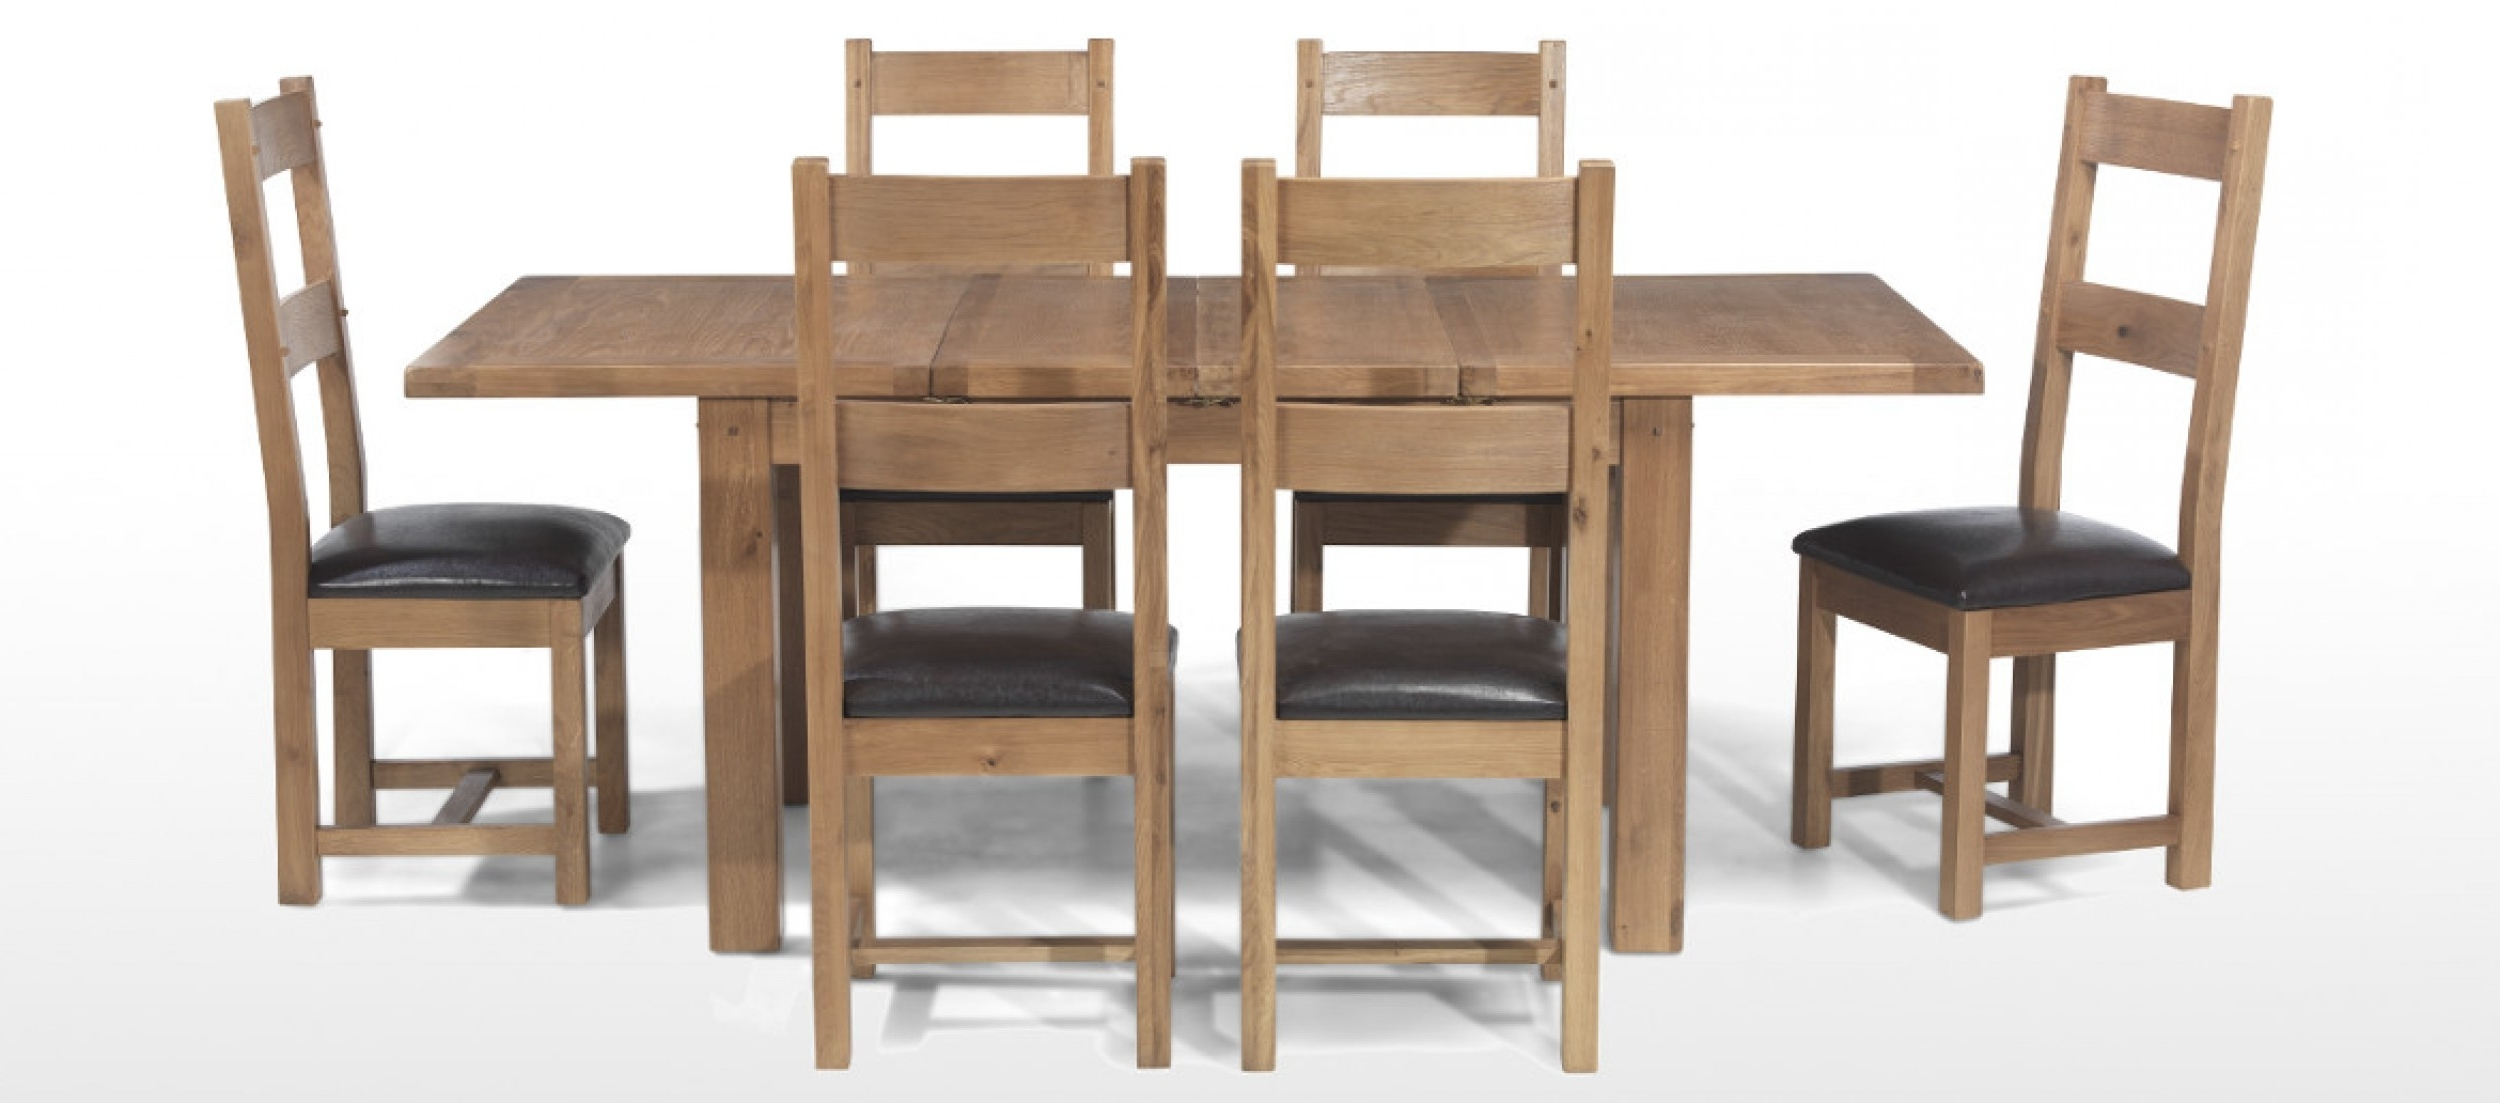 Quercus Regarding Newest Extending Dining Tables And Chairs (View 6 of 25)